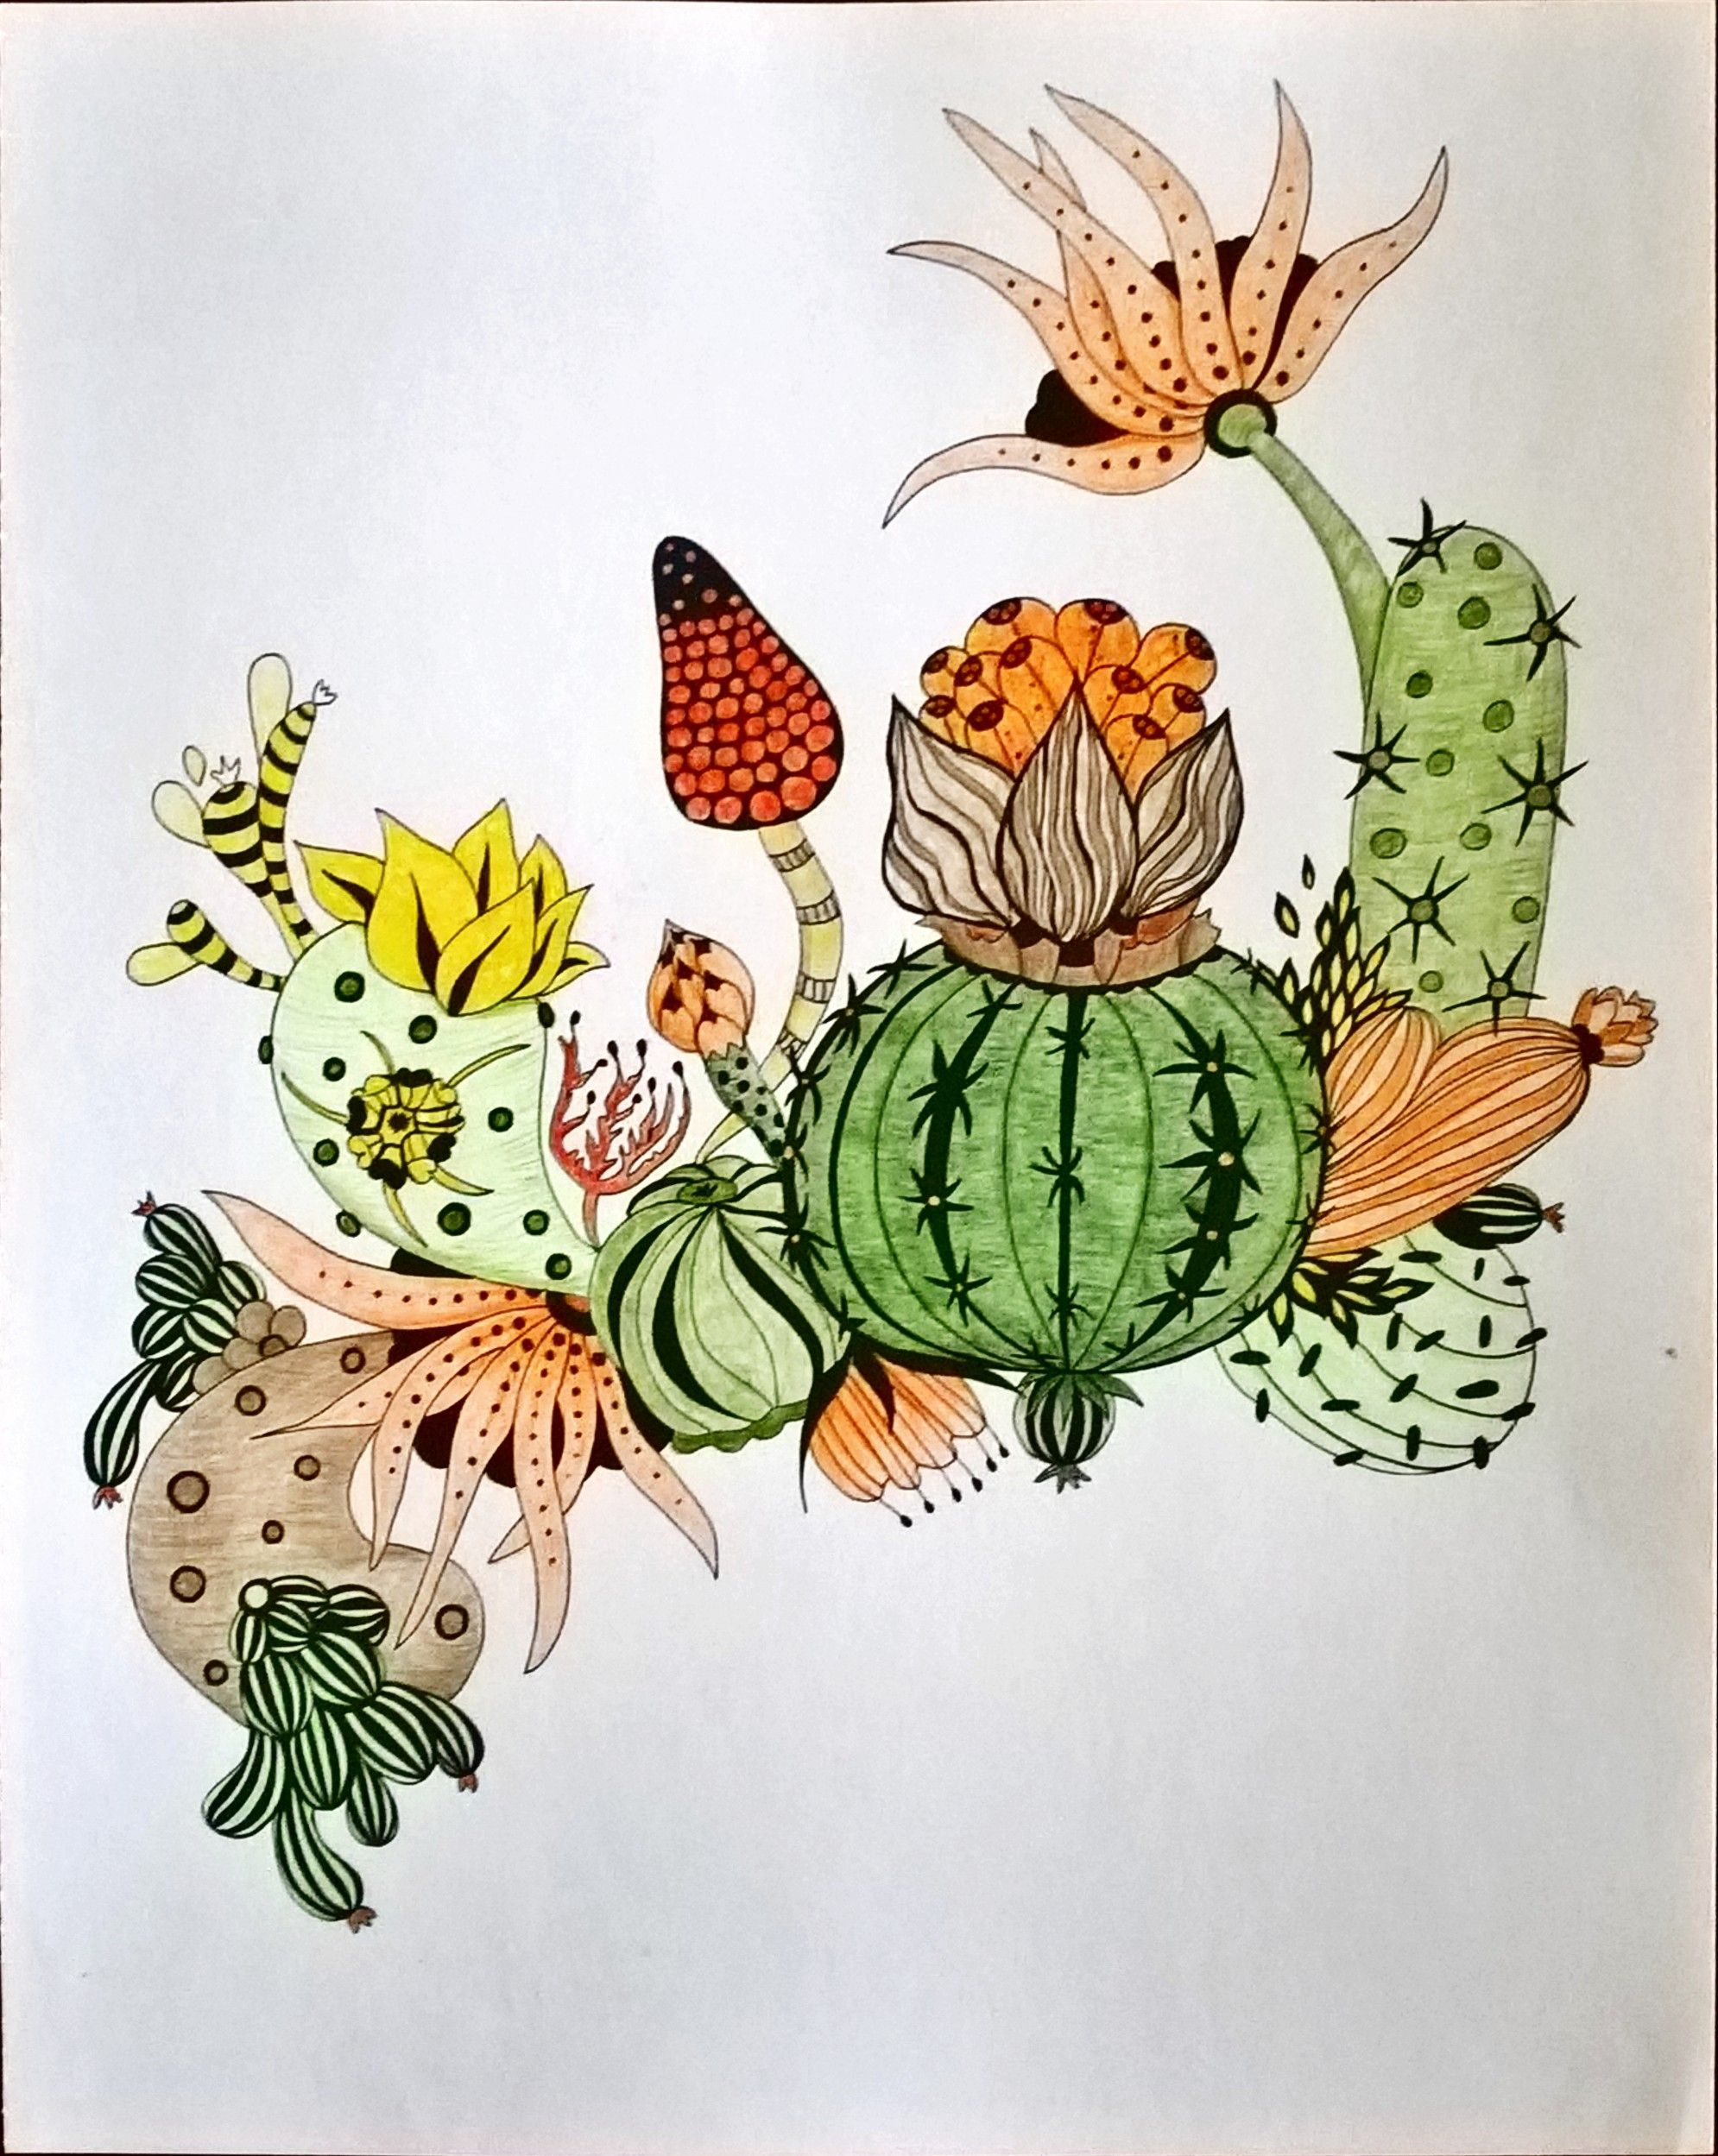 The zoology coloring book - Adult Coloring From Book Botanical Wonderland